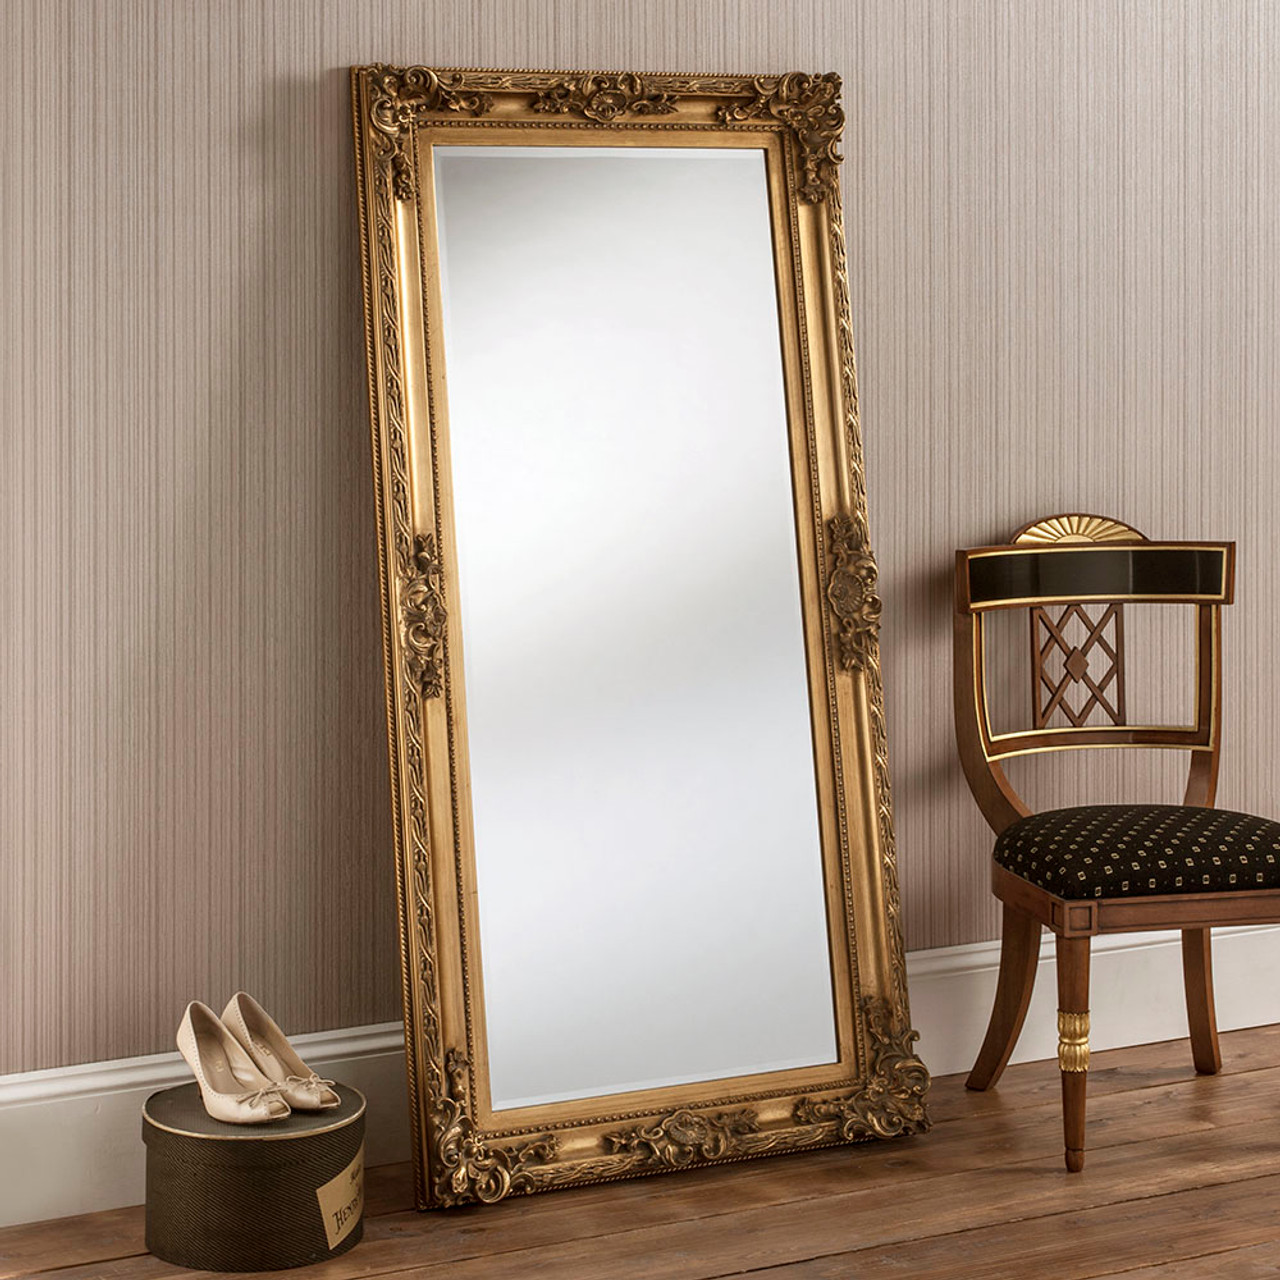 Bevelled Gold Full Length Mirror See Our Range Of Dressing Mirrors